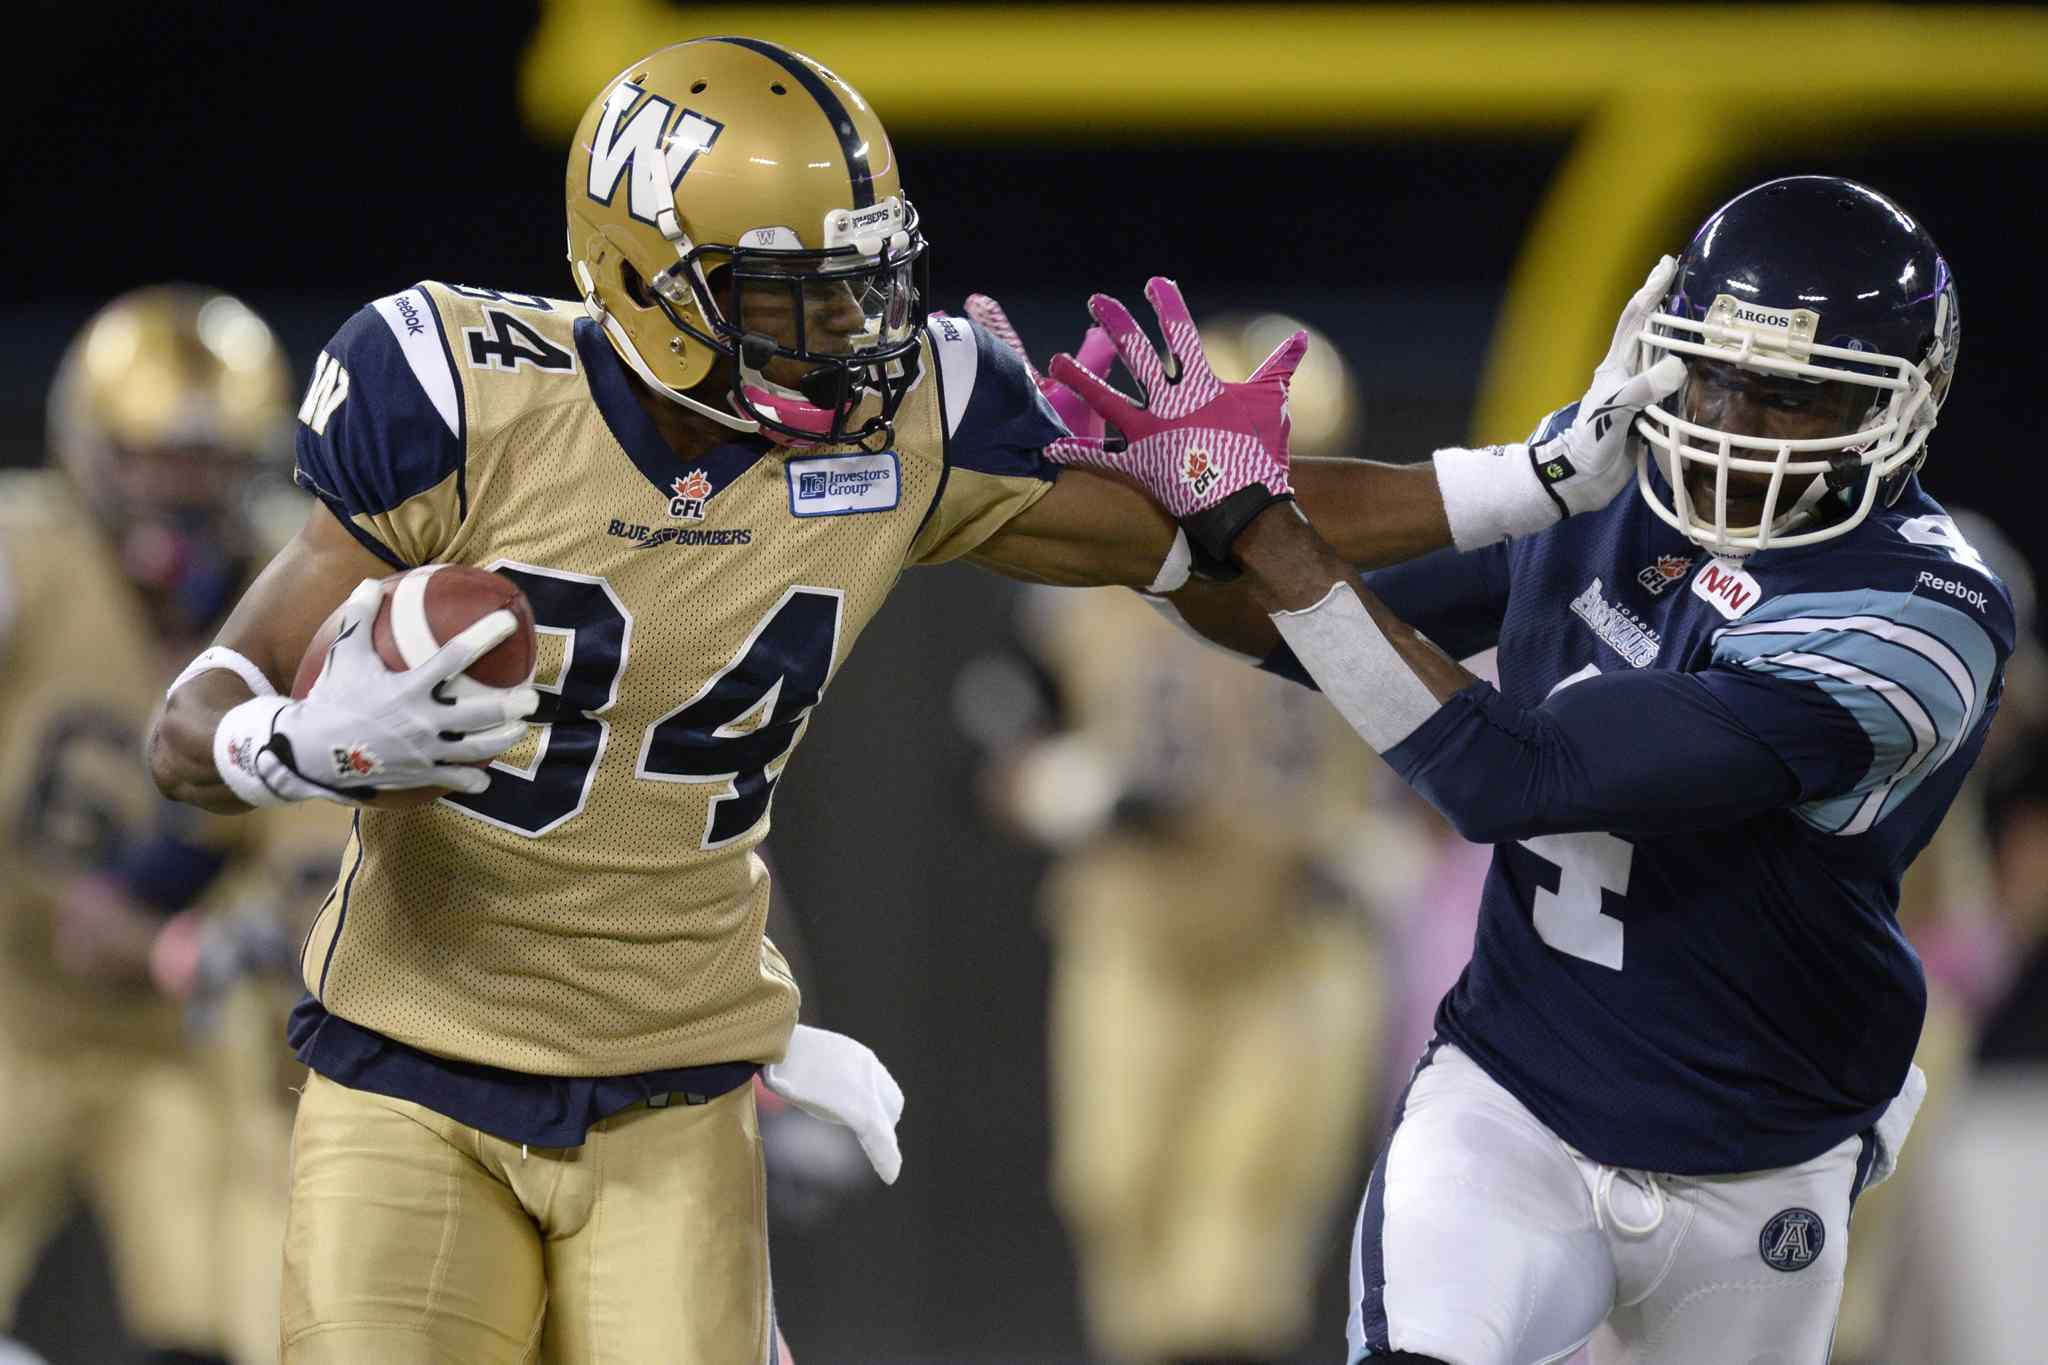 Winnipeg Blue Bombers' Wallace Miles holds off Pacino Horne of the Toronto Argonauts after making a catch during the first quarter.